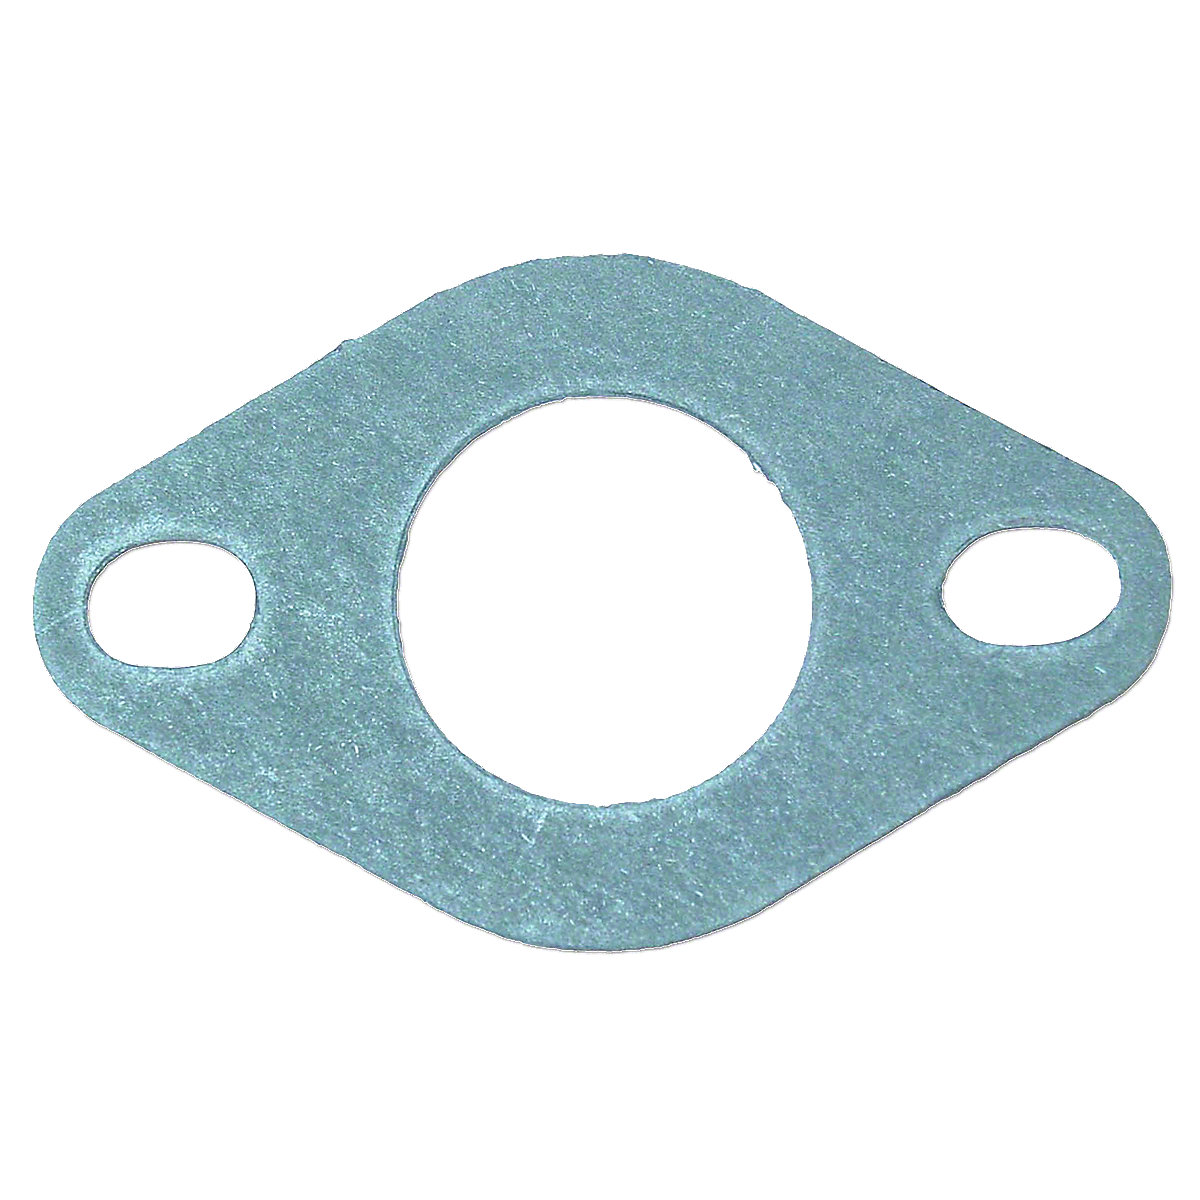 Carburetor To Mainfold Mounting Gasket For Allis Chalmers: B, C, CA, D10, D12, D14, D15, D17, I40, I400, I60, I600, IB, RC, WC, WD, WD45, WF, 170, 175